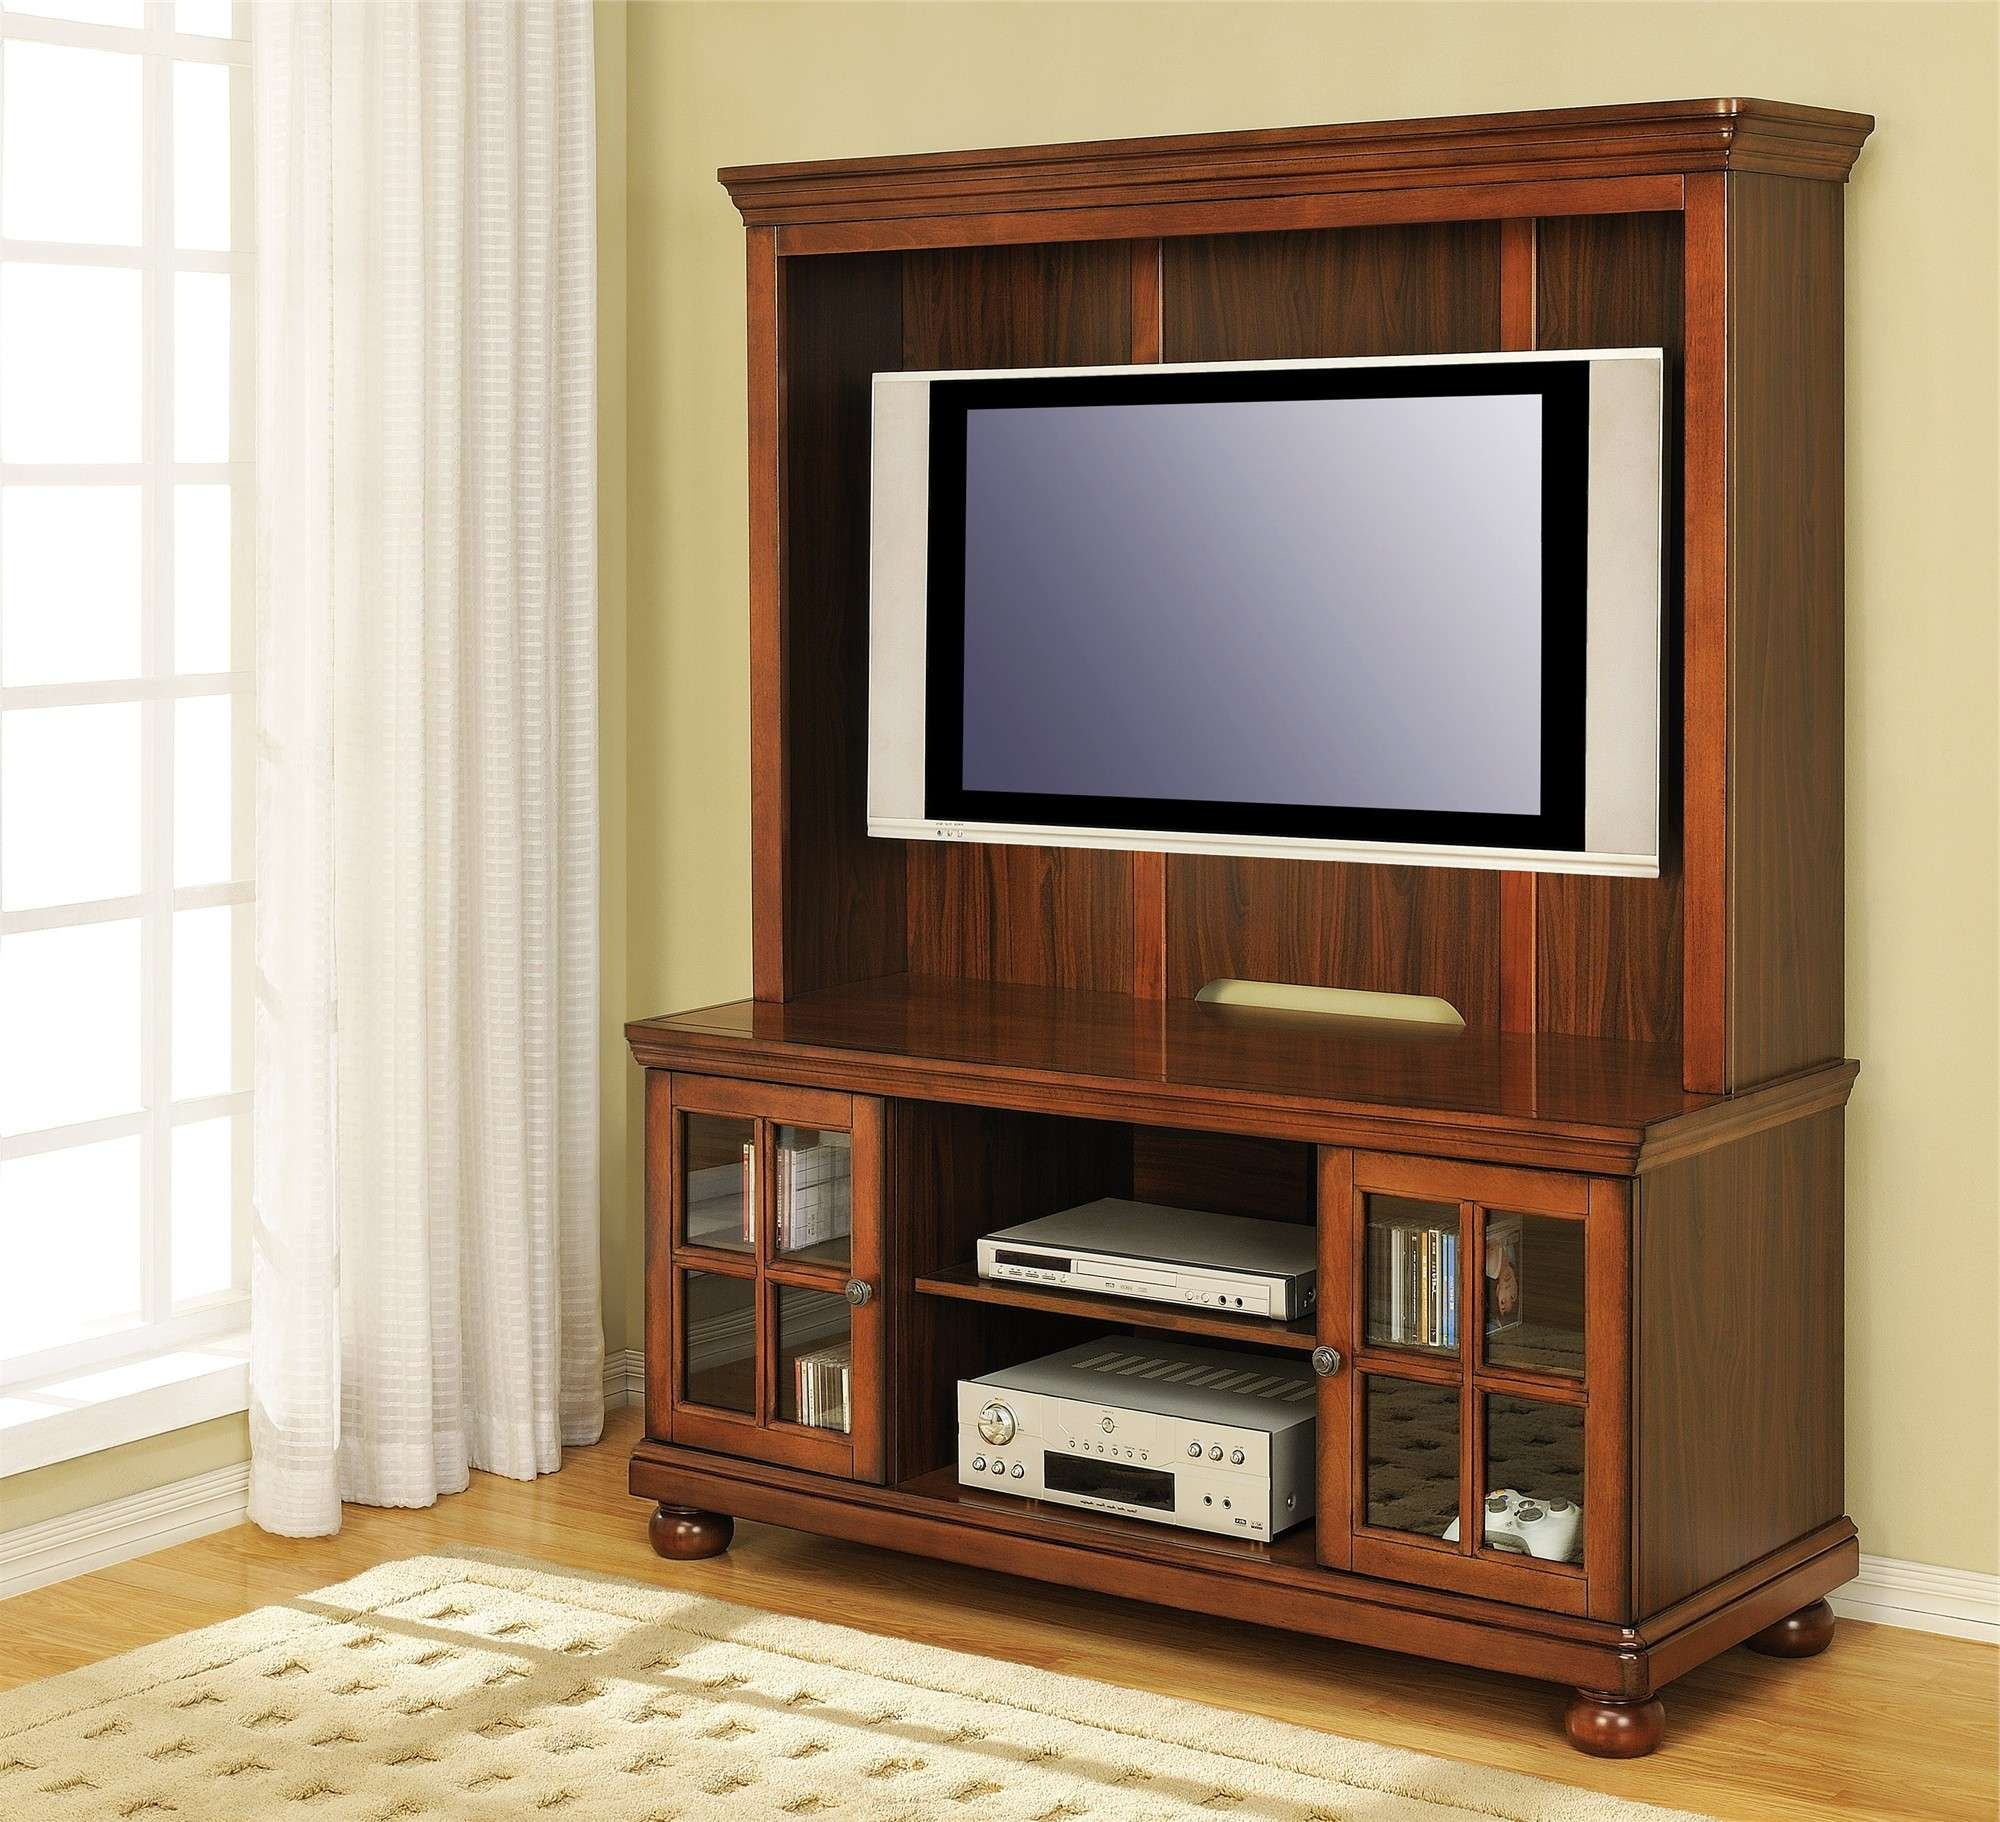 Modern Brown Oak Wood Media Cabinet With Mounted Tv Of Dazzling In Wooden Tv Cabinets (View 19 of 20)